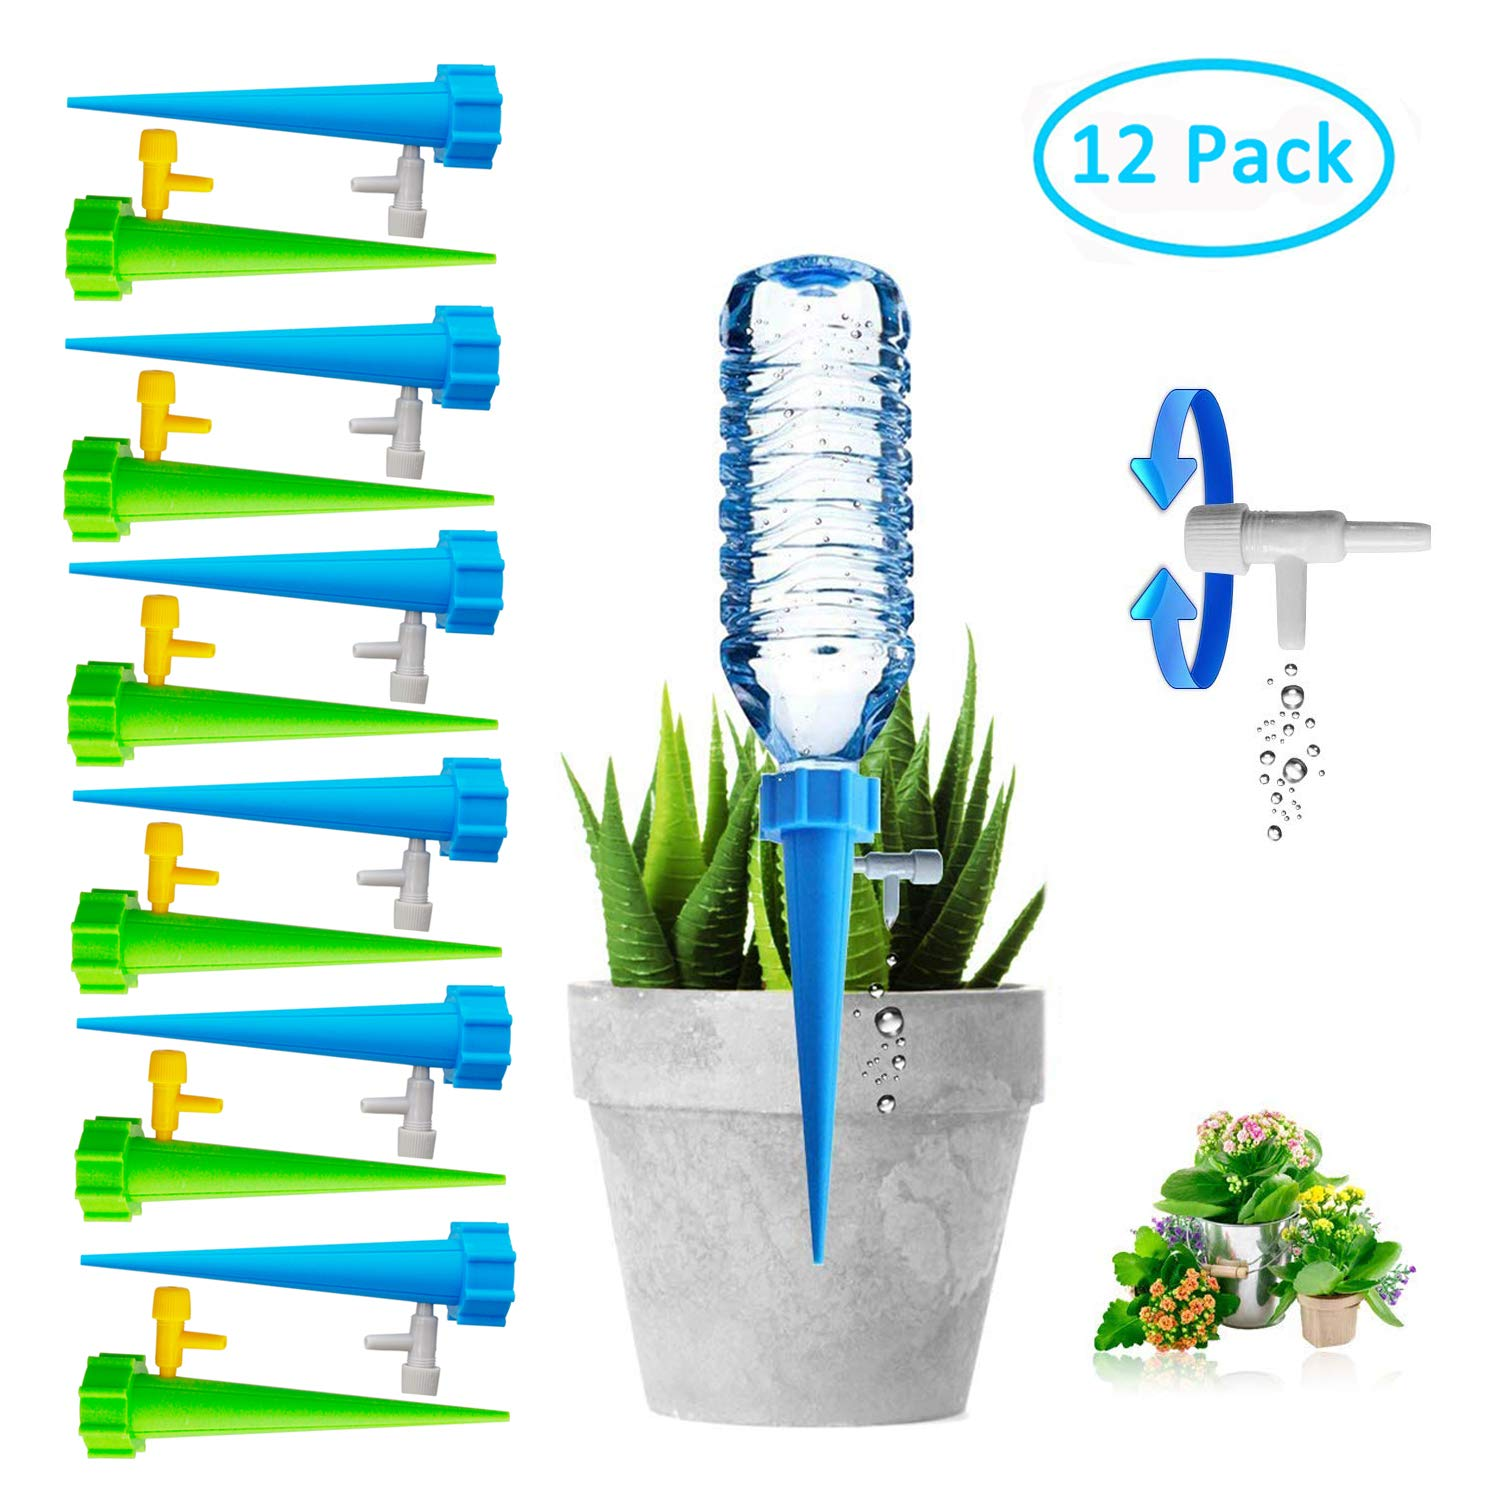 Plant Self Watering Spikes Bulbs Globes Stakes System,Vacation Plant Waterer Nannies Pot Self Drip Irrigation Slow Release Devices Care Your Indoor & Outdoor Home and Office Plants (12pack)